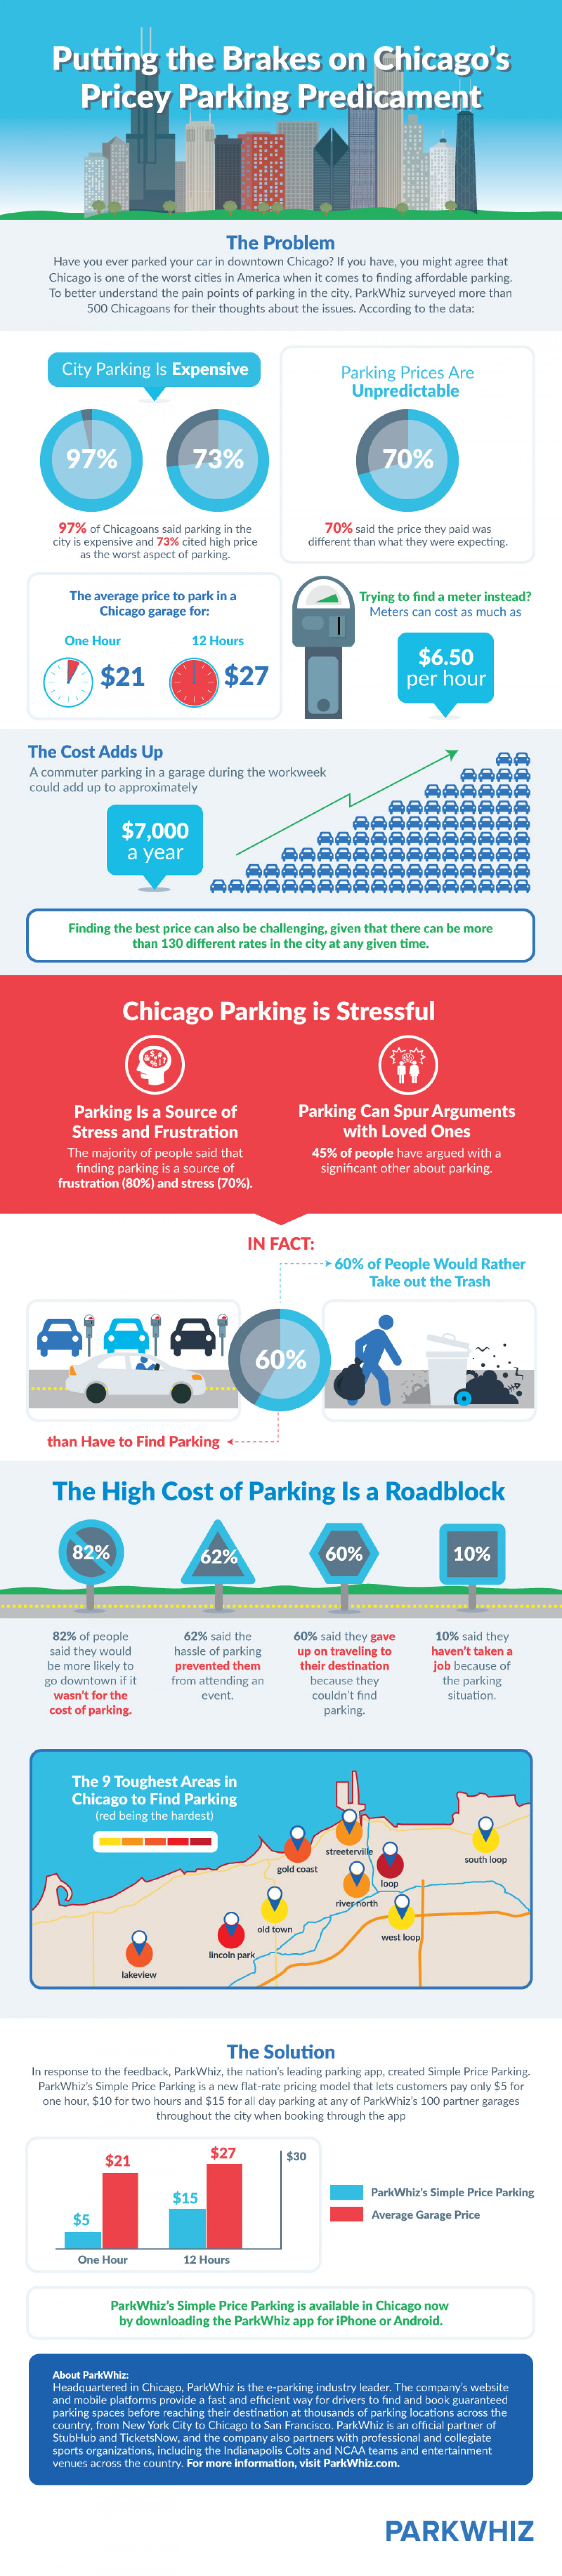 Putting the Brakes on Chicago's Pricey Parking Predicament  Infographic